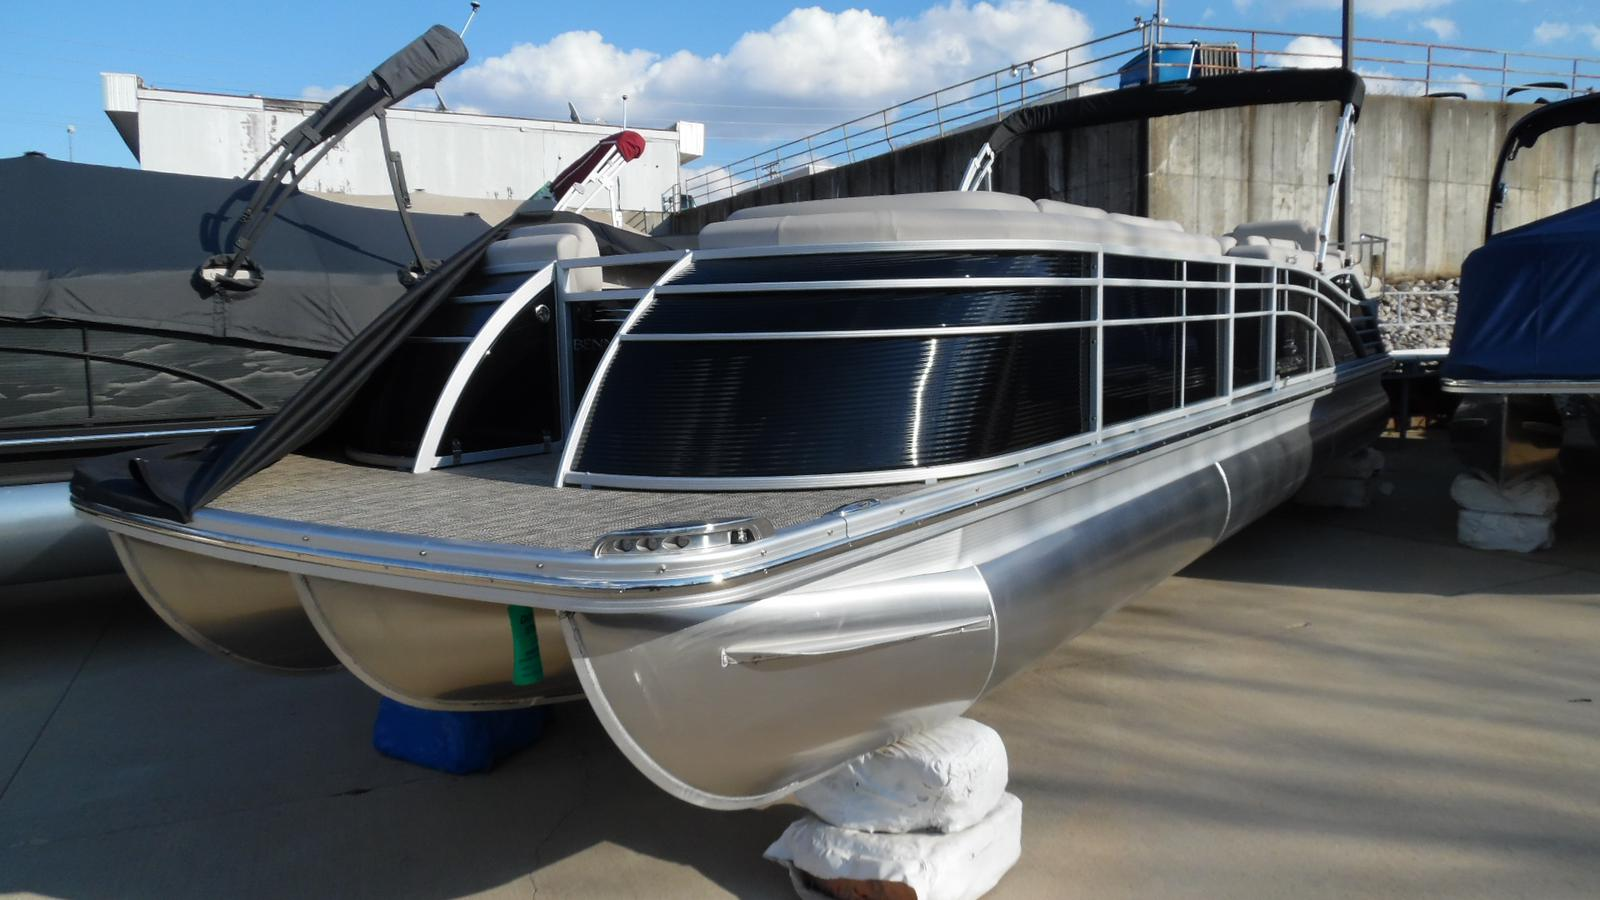 Pontoon boats for sale 4 for Craigslist used fishing boats